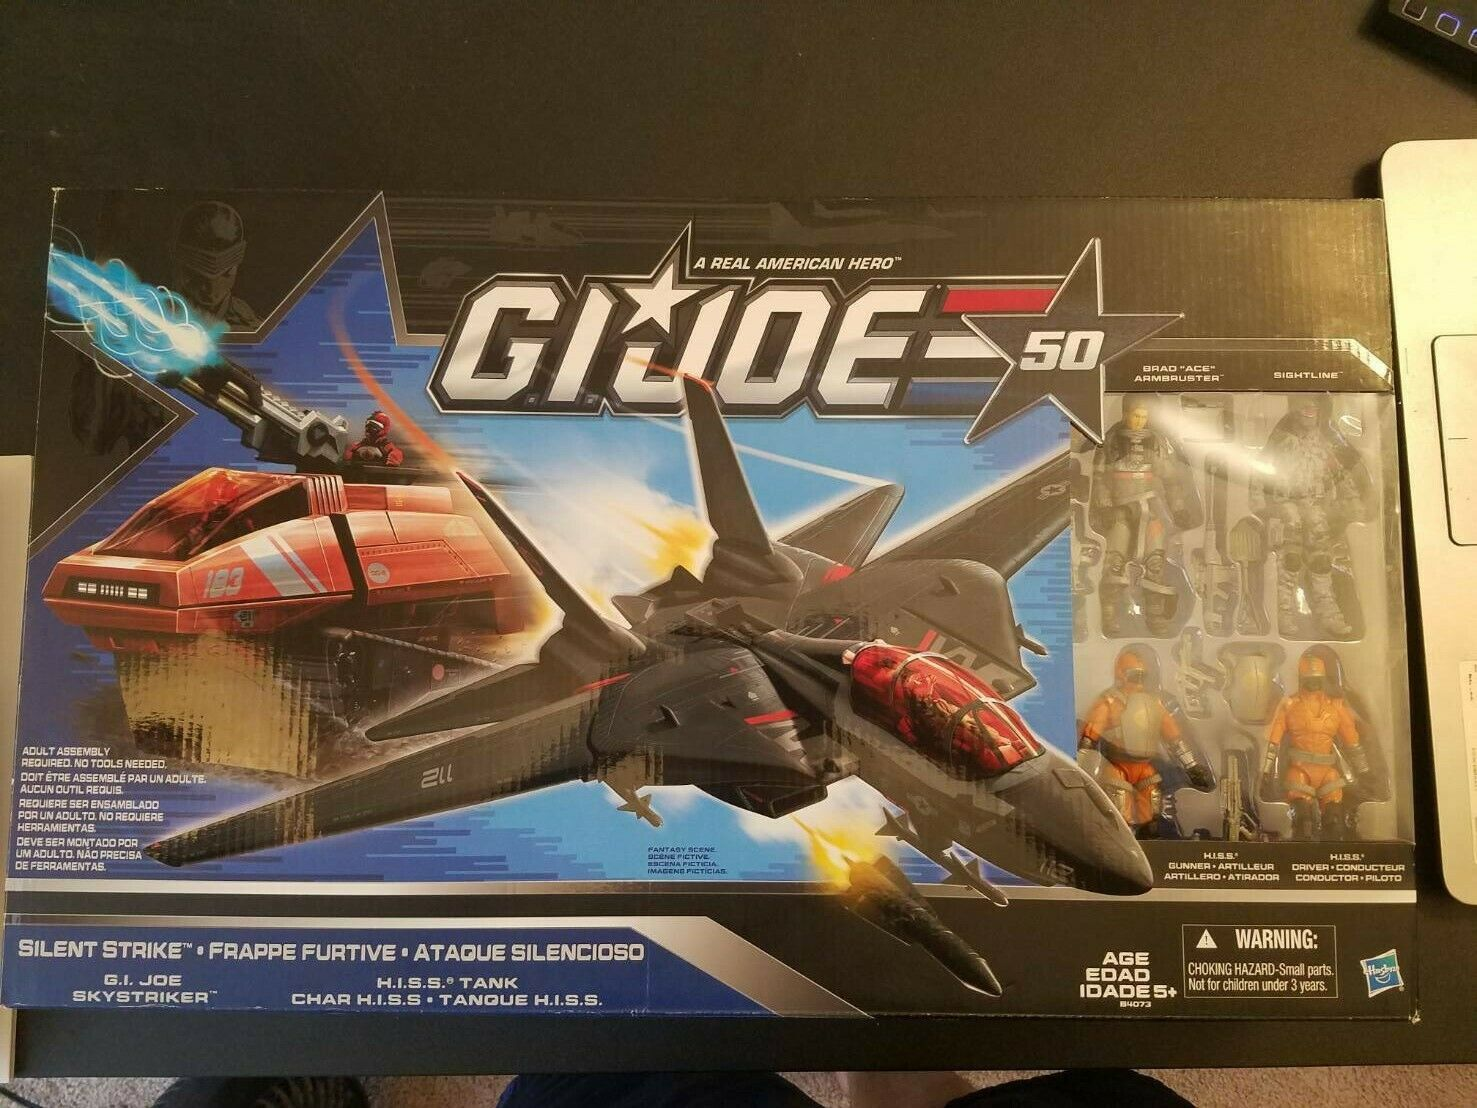 Gi Joe 50th Anniversary Silent Strike Skystriker and HISS Tank